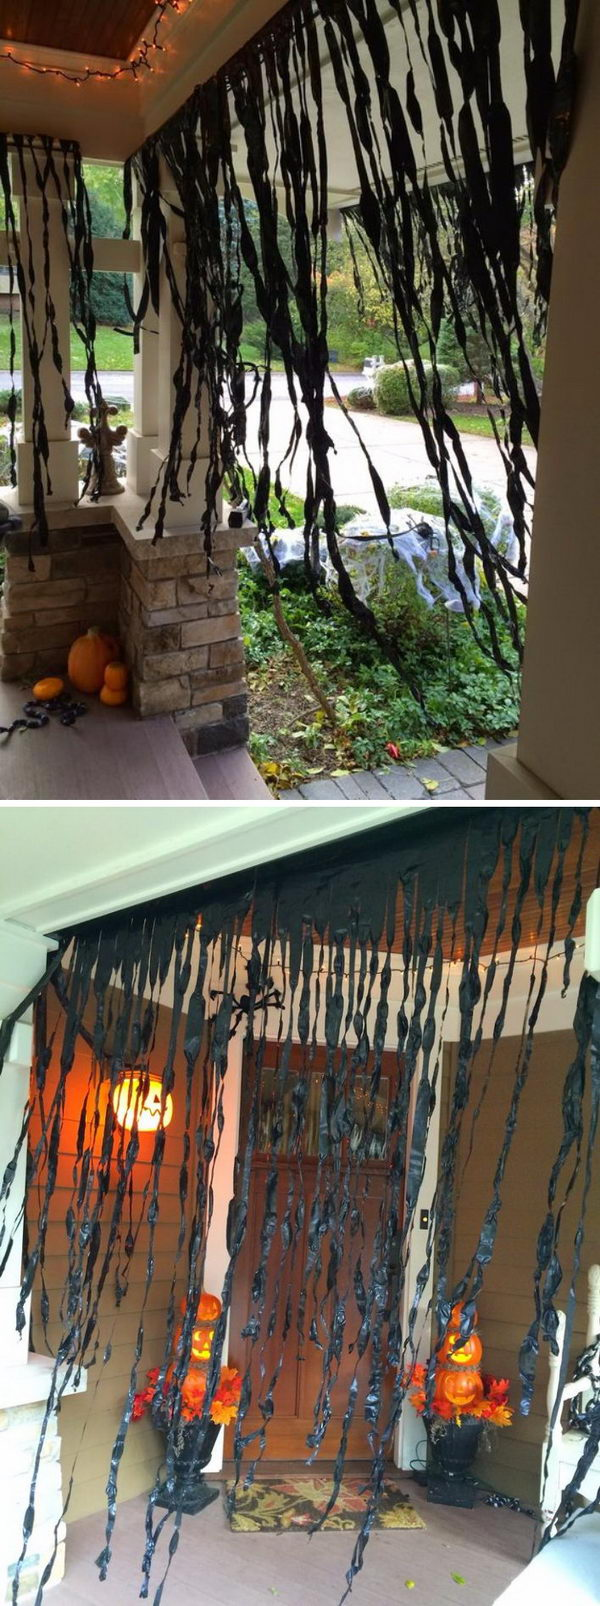 Cut Up Black Plastic To Make A Spooky Porch.